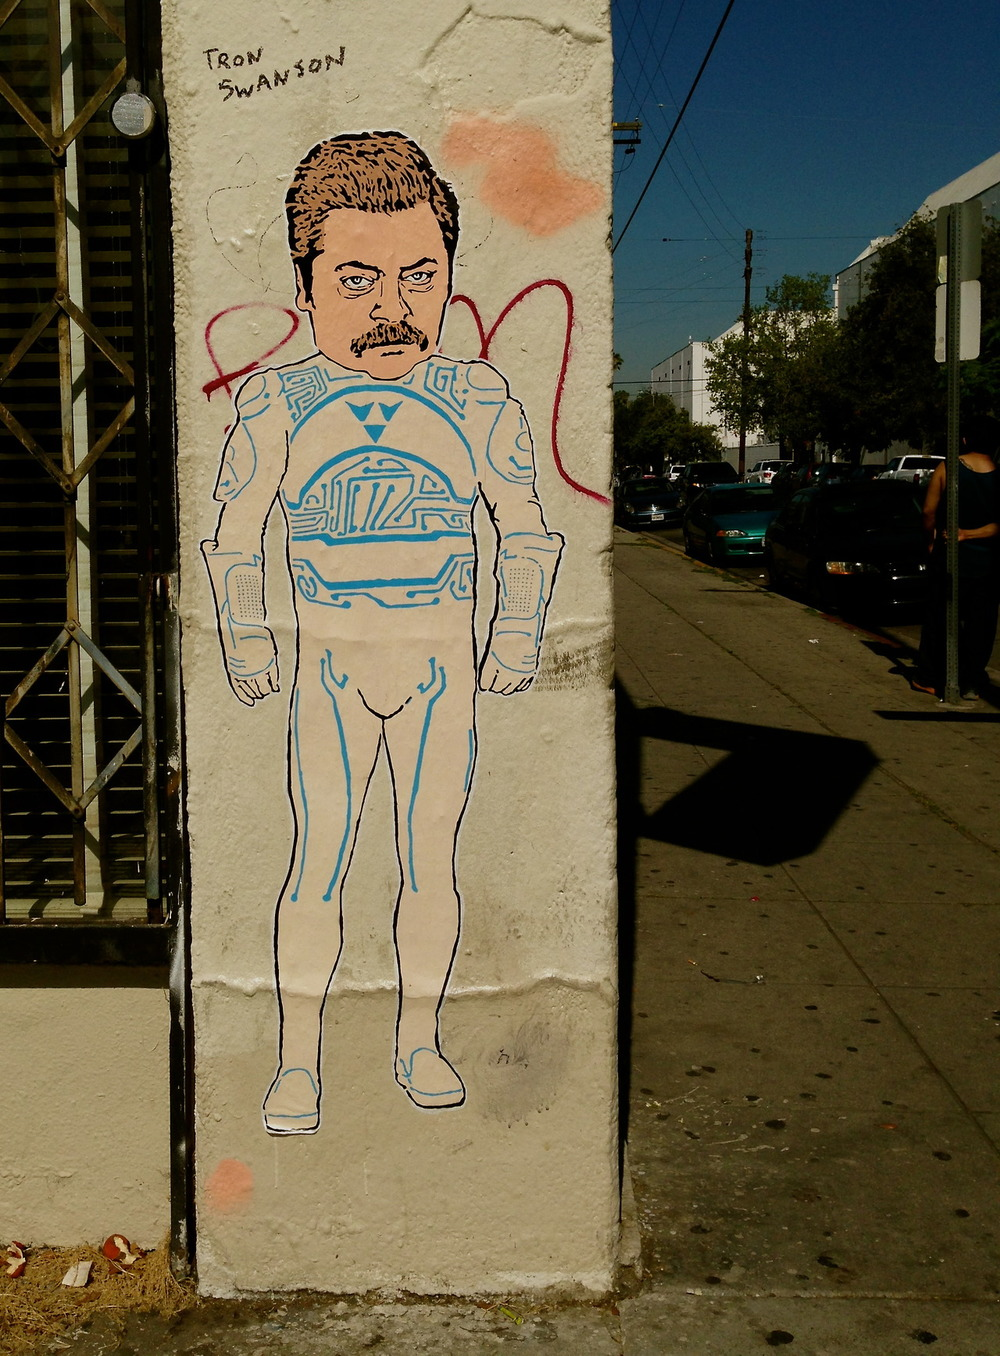 Tron Swanson, Los Angeles, CA